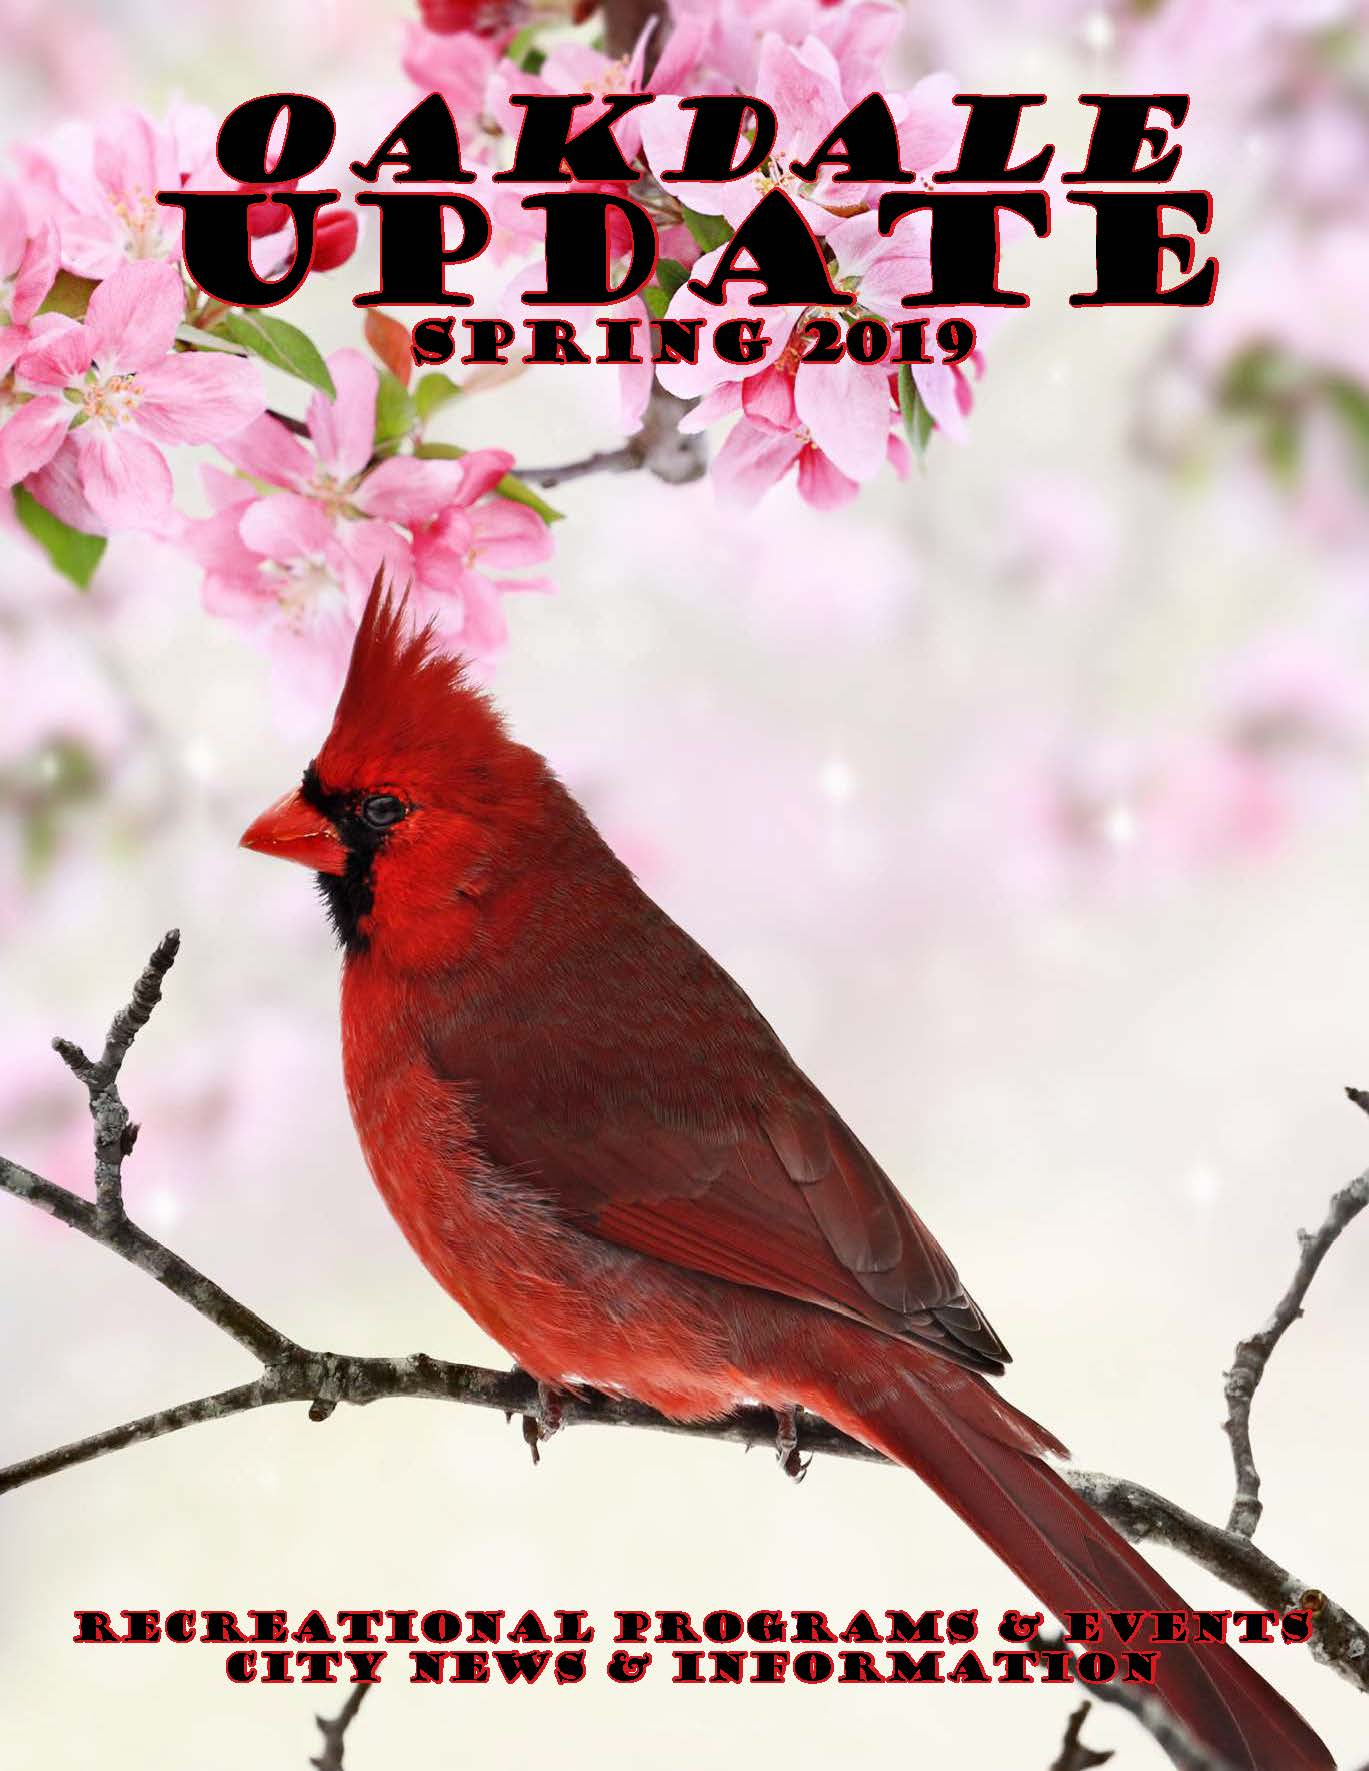 Cover of spring 2019 newsletter showing red cardinal bird on flowering crab tree branch